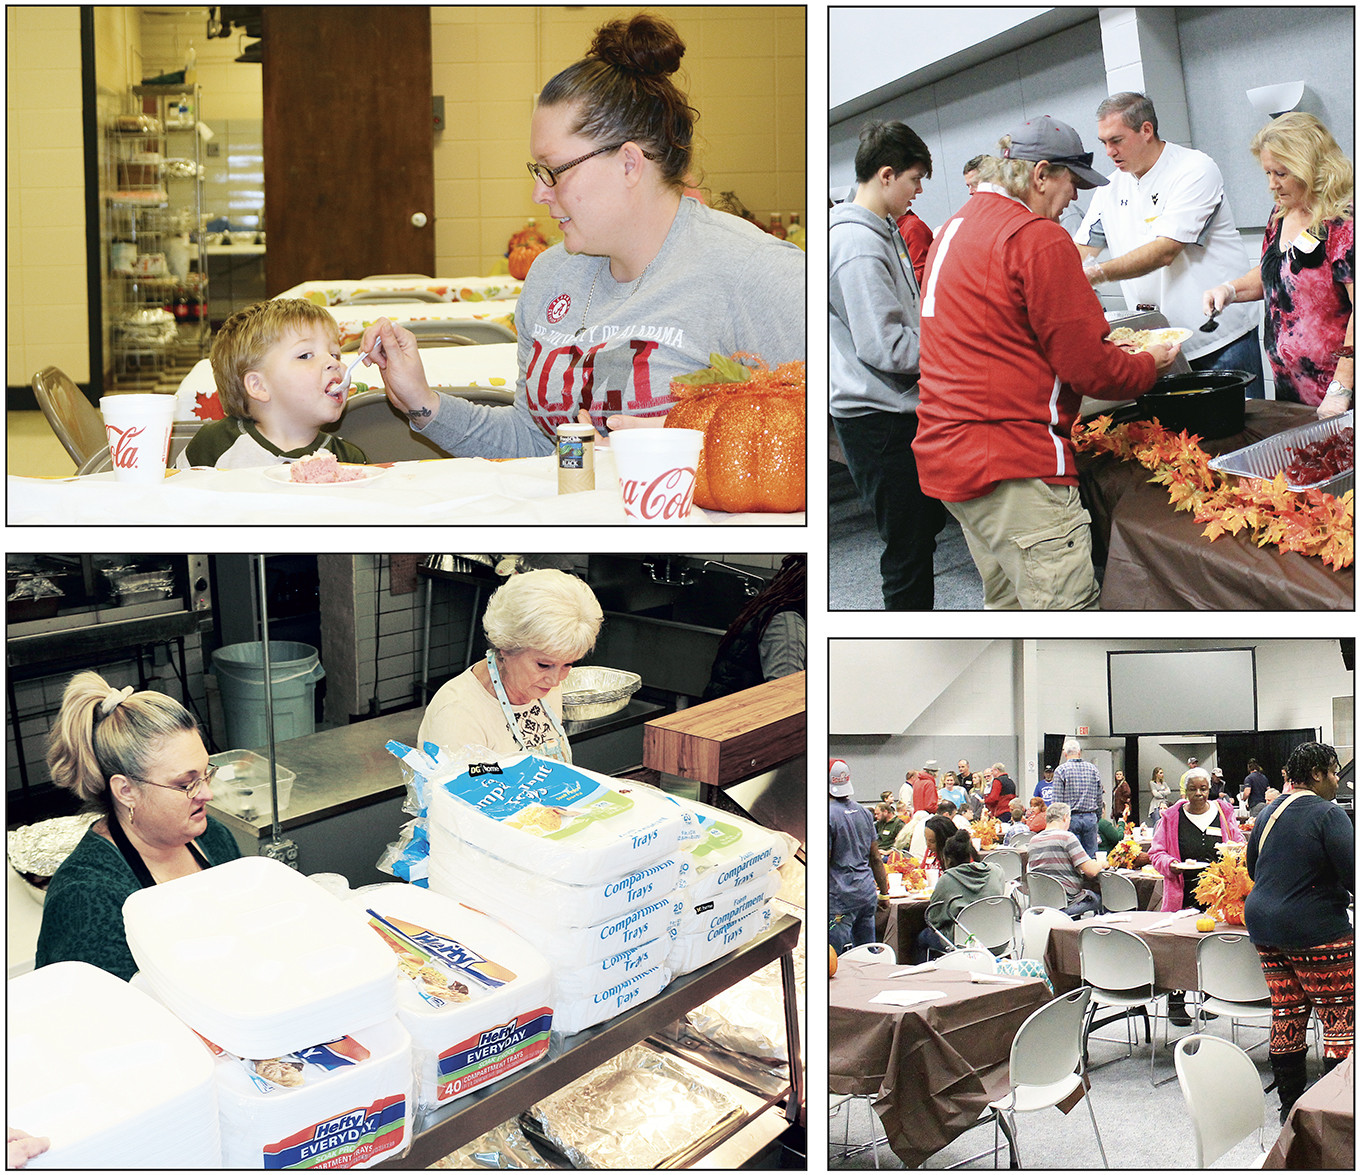 At left, the Town of Parrish hosted a community Thanksgiving meal on Thursday at the Parrish Community Center. At right, Glory Fellowship Baptist Church hosted its annual Thanksgiving meal for the community at the Jasper Civic Center.